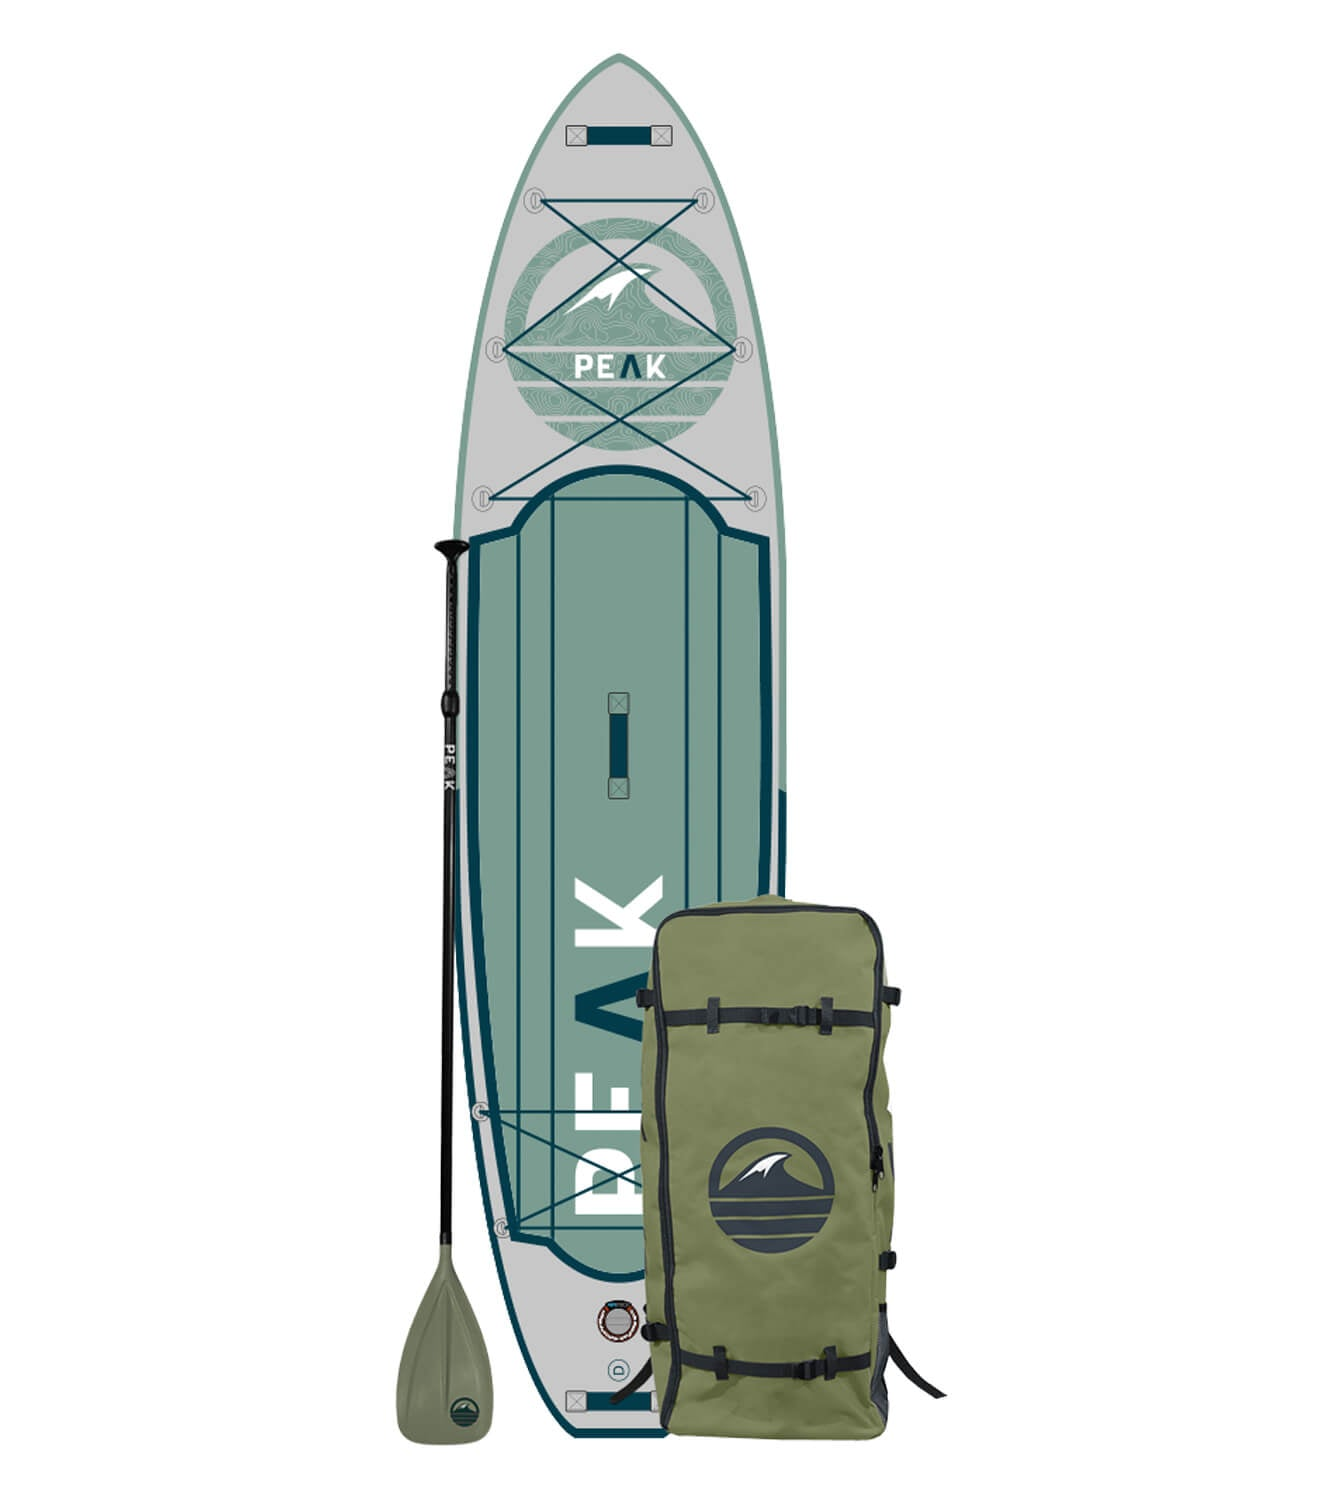 Peak expedition Inflatable SUP